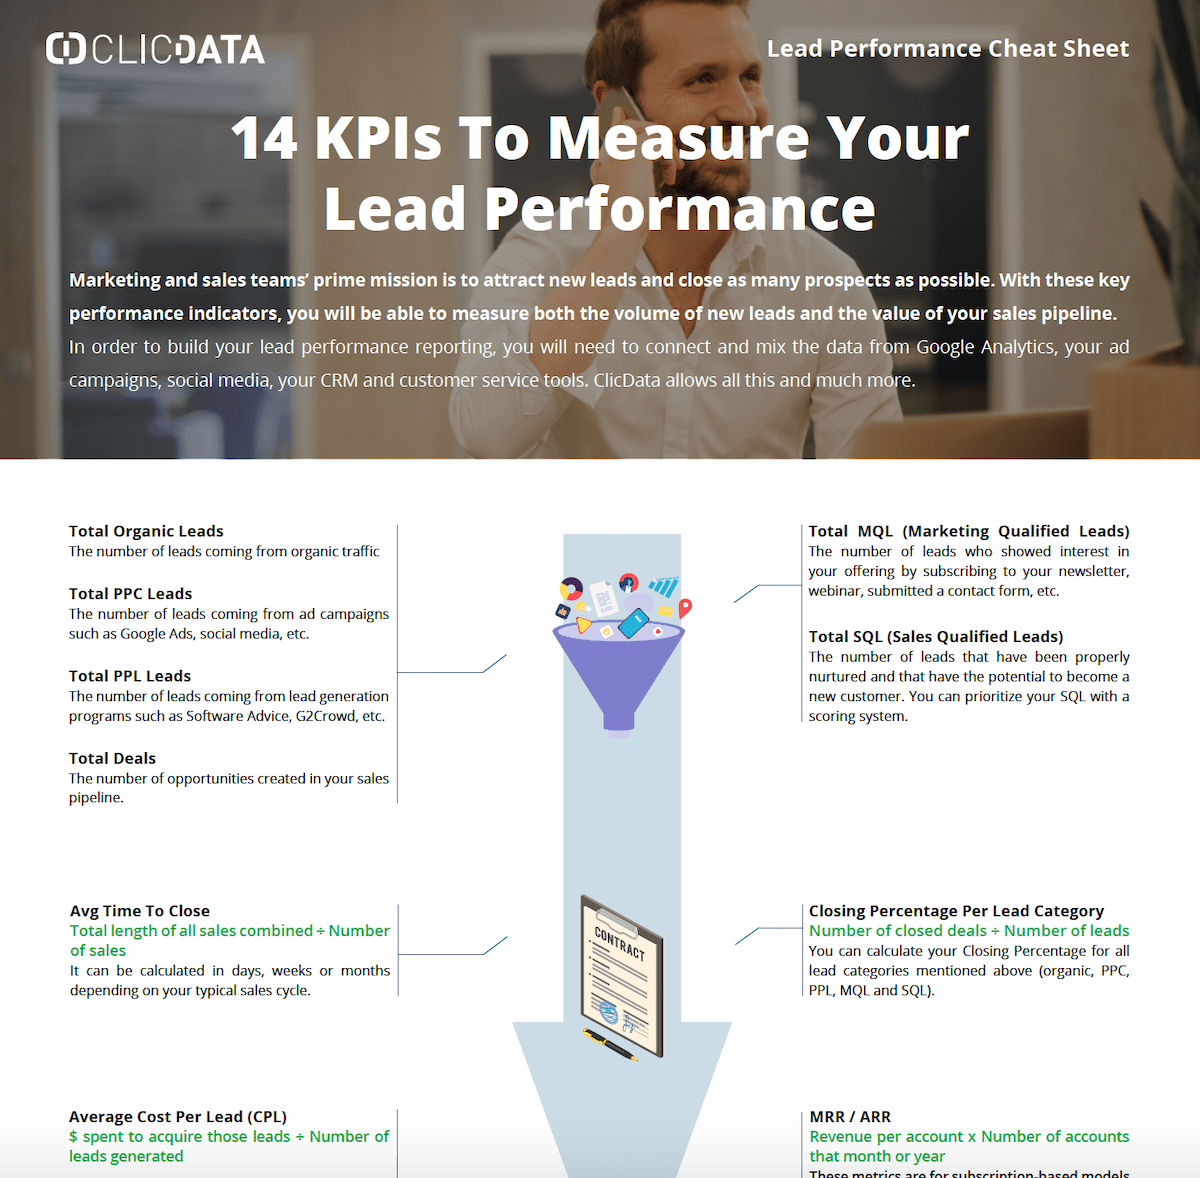 Lead Performance Cheat Sheet